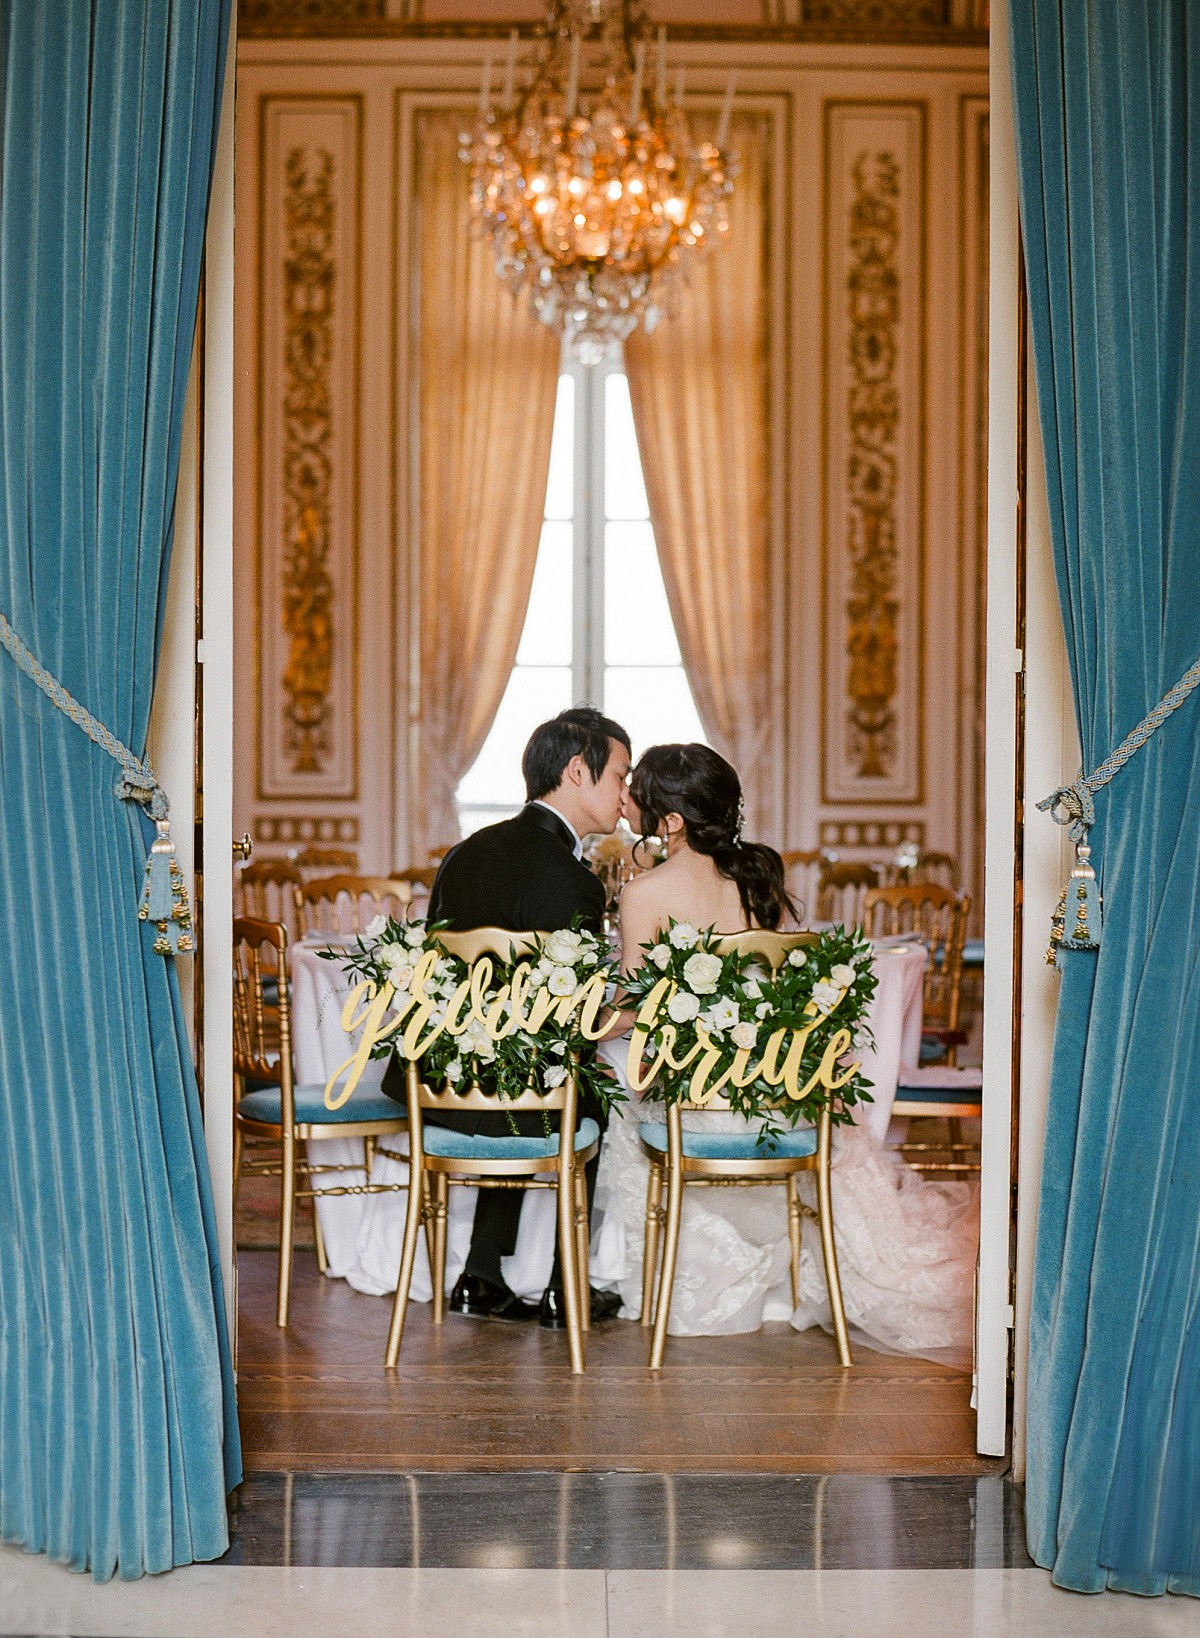 French Dusty Blue Wedding full of Florals